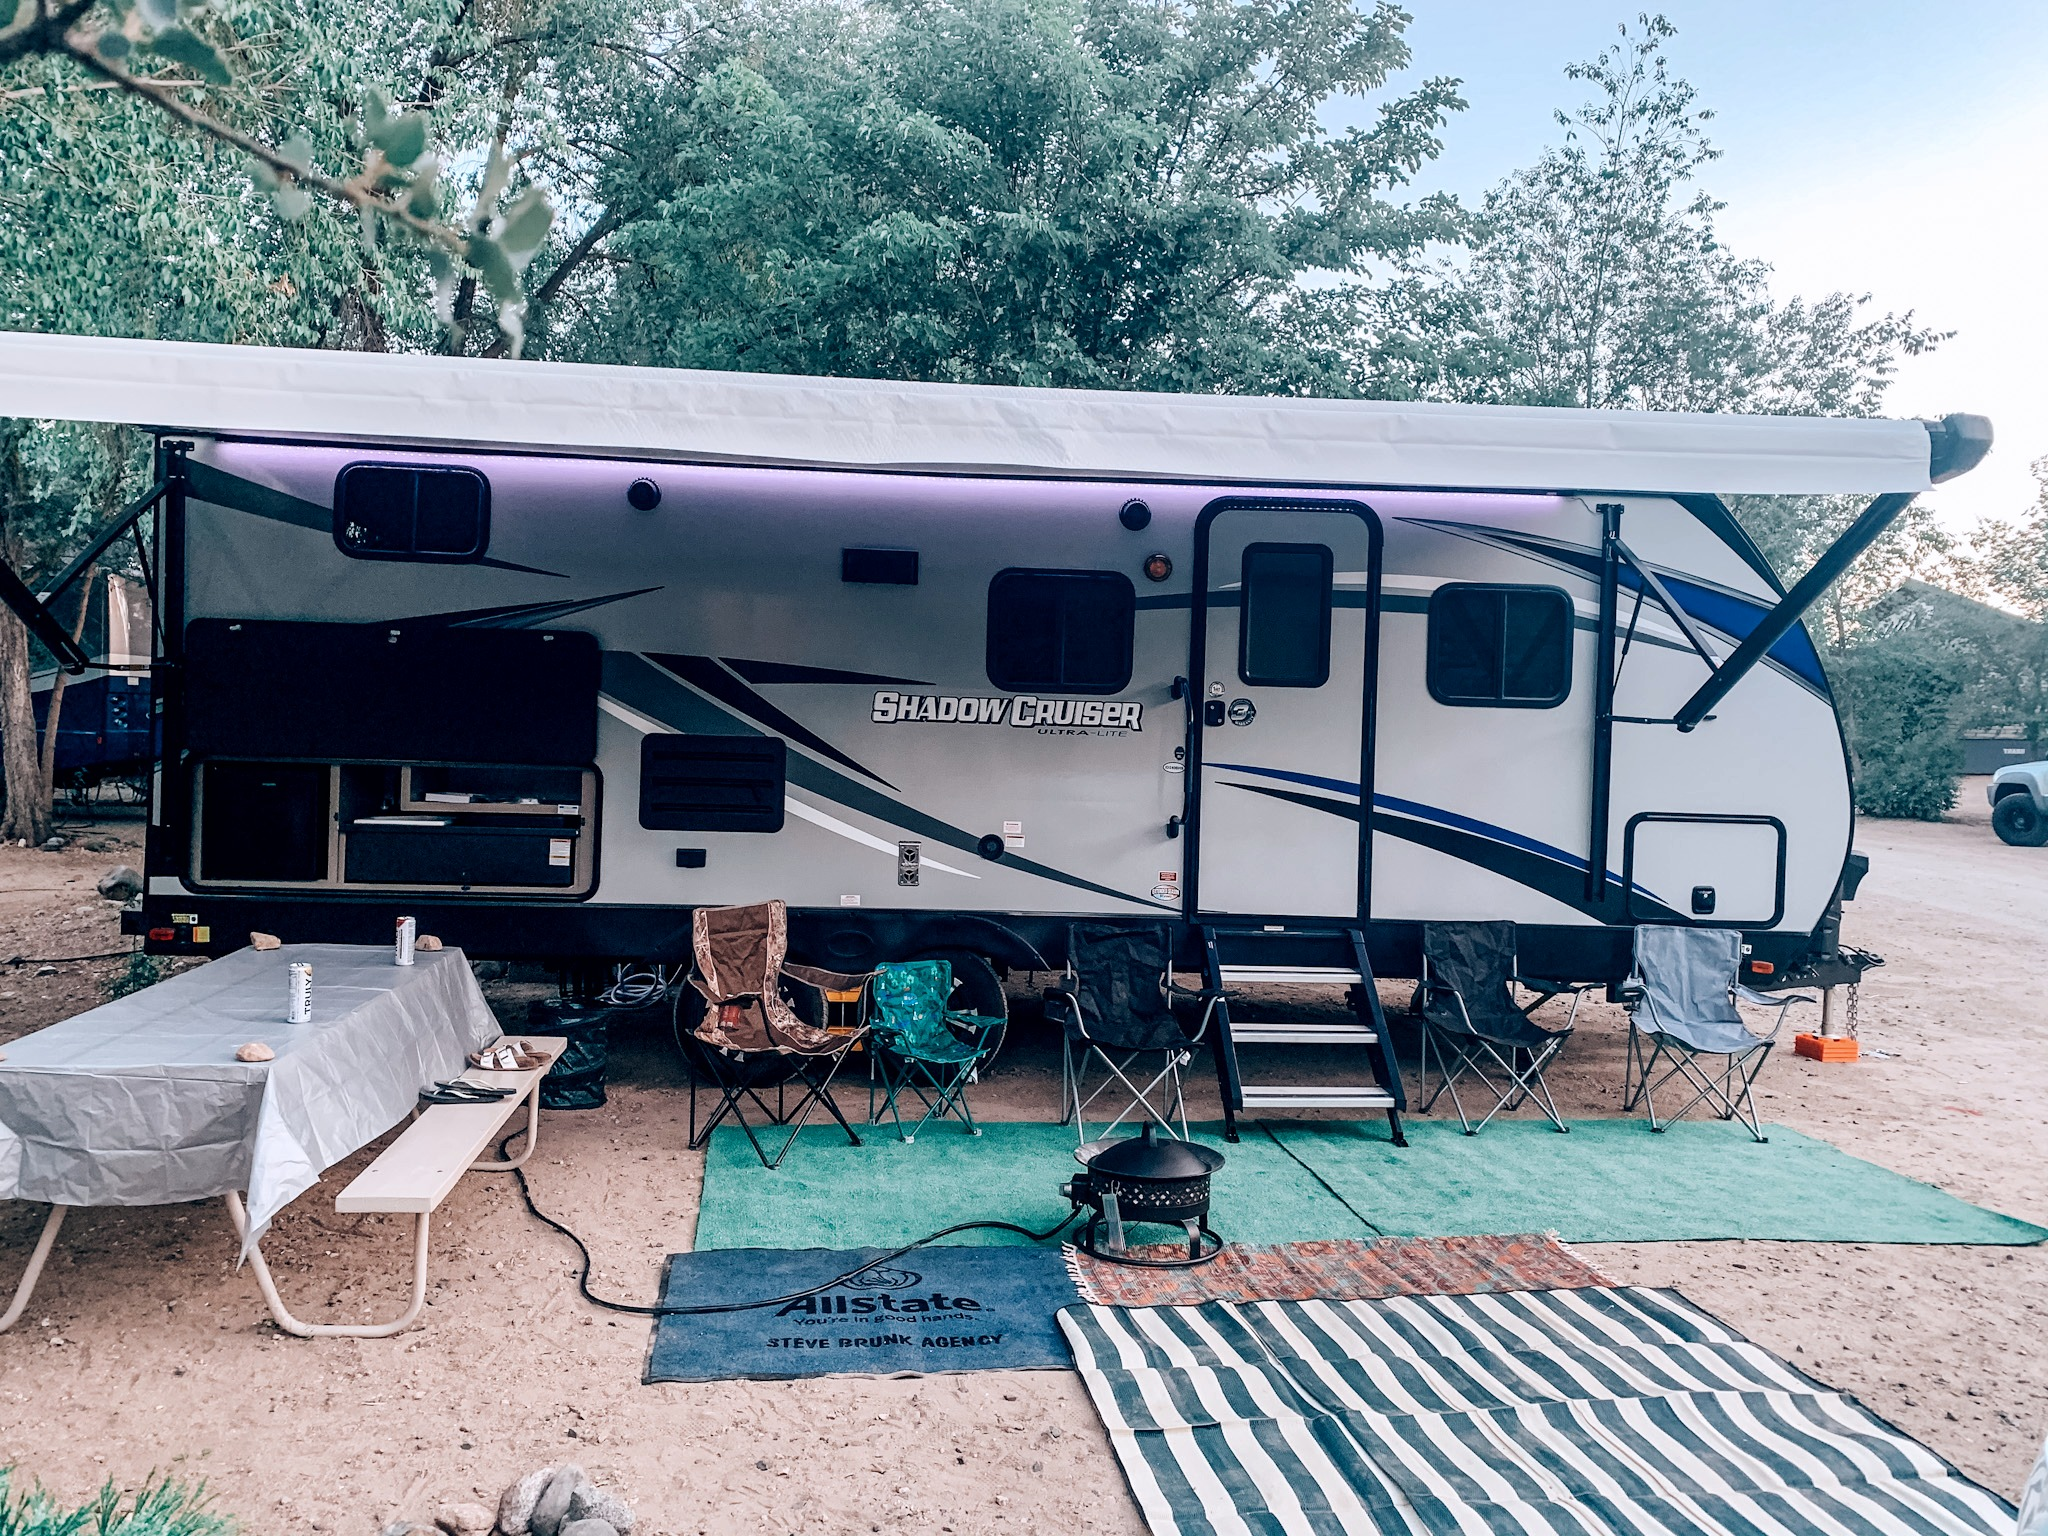 All set up and ready for fun!!!!. Cruiser Rv Corp Shadow Cruiser 2020